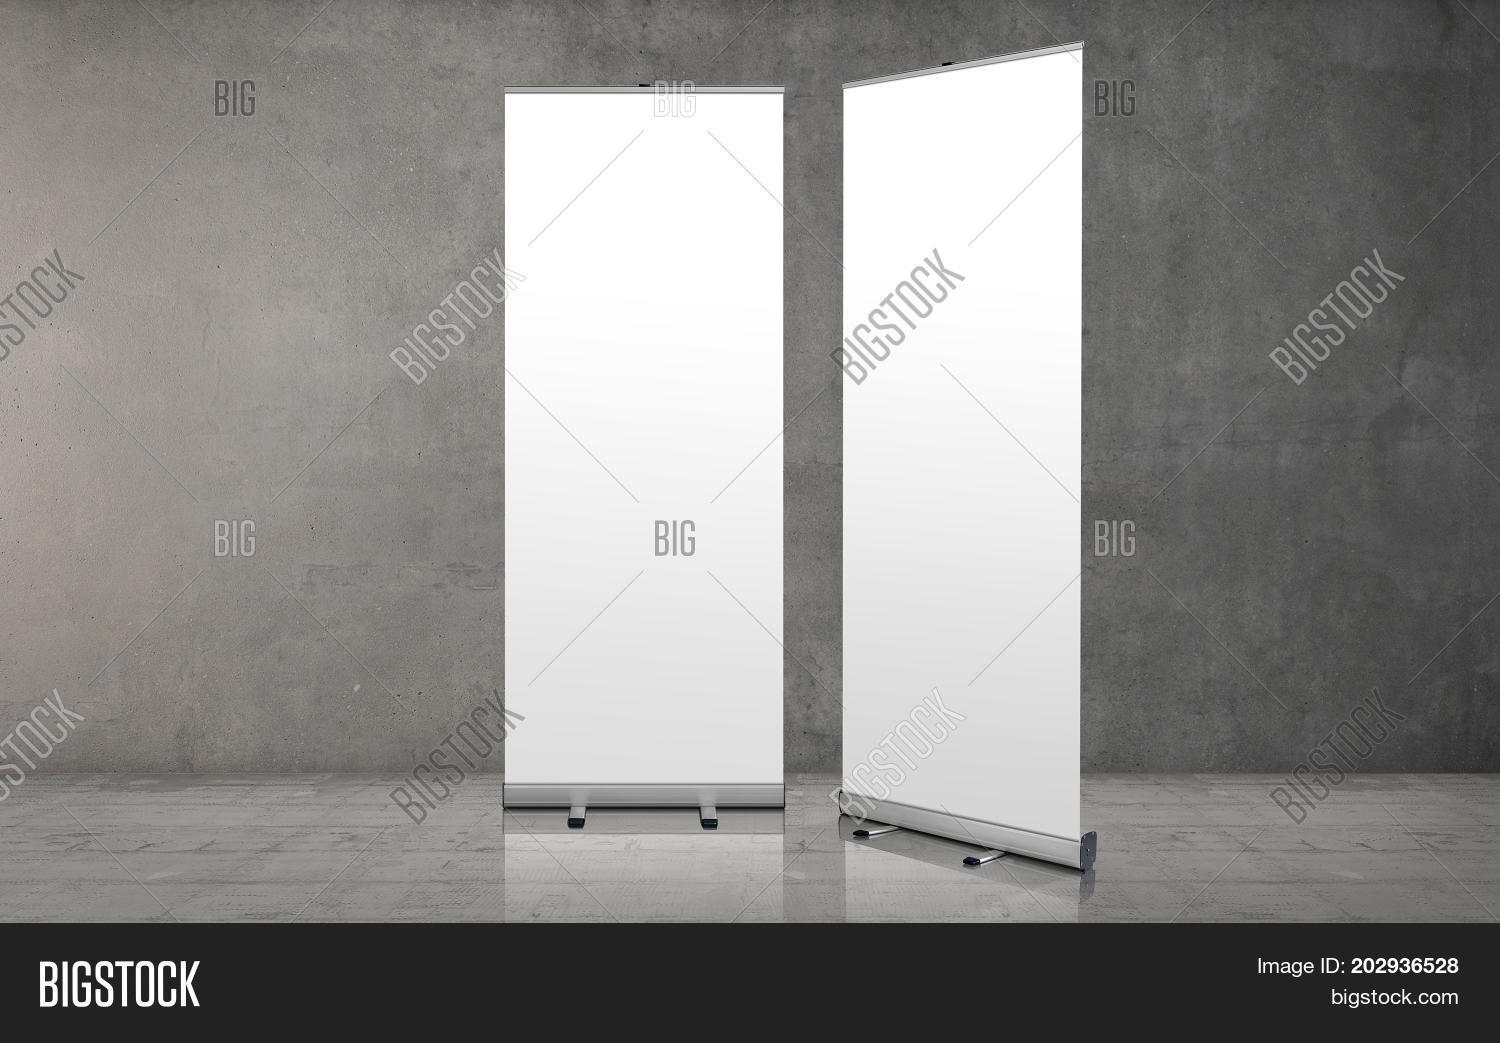 Exhibition Stand Template : Roll banner stand image photo free trial bigstock